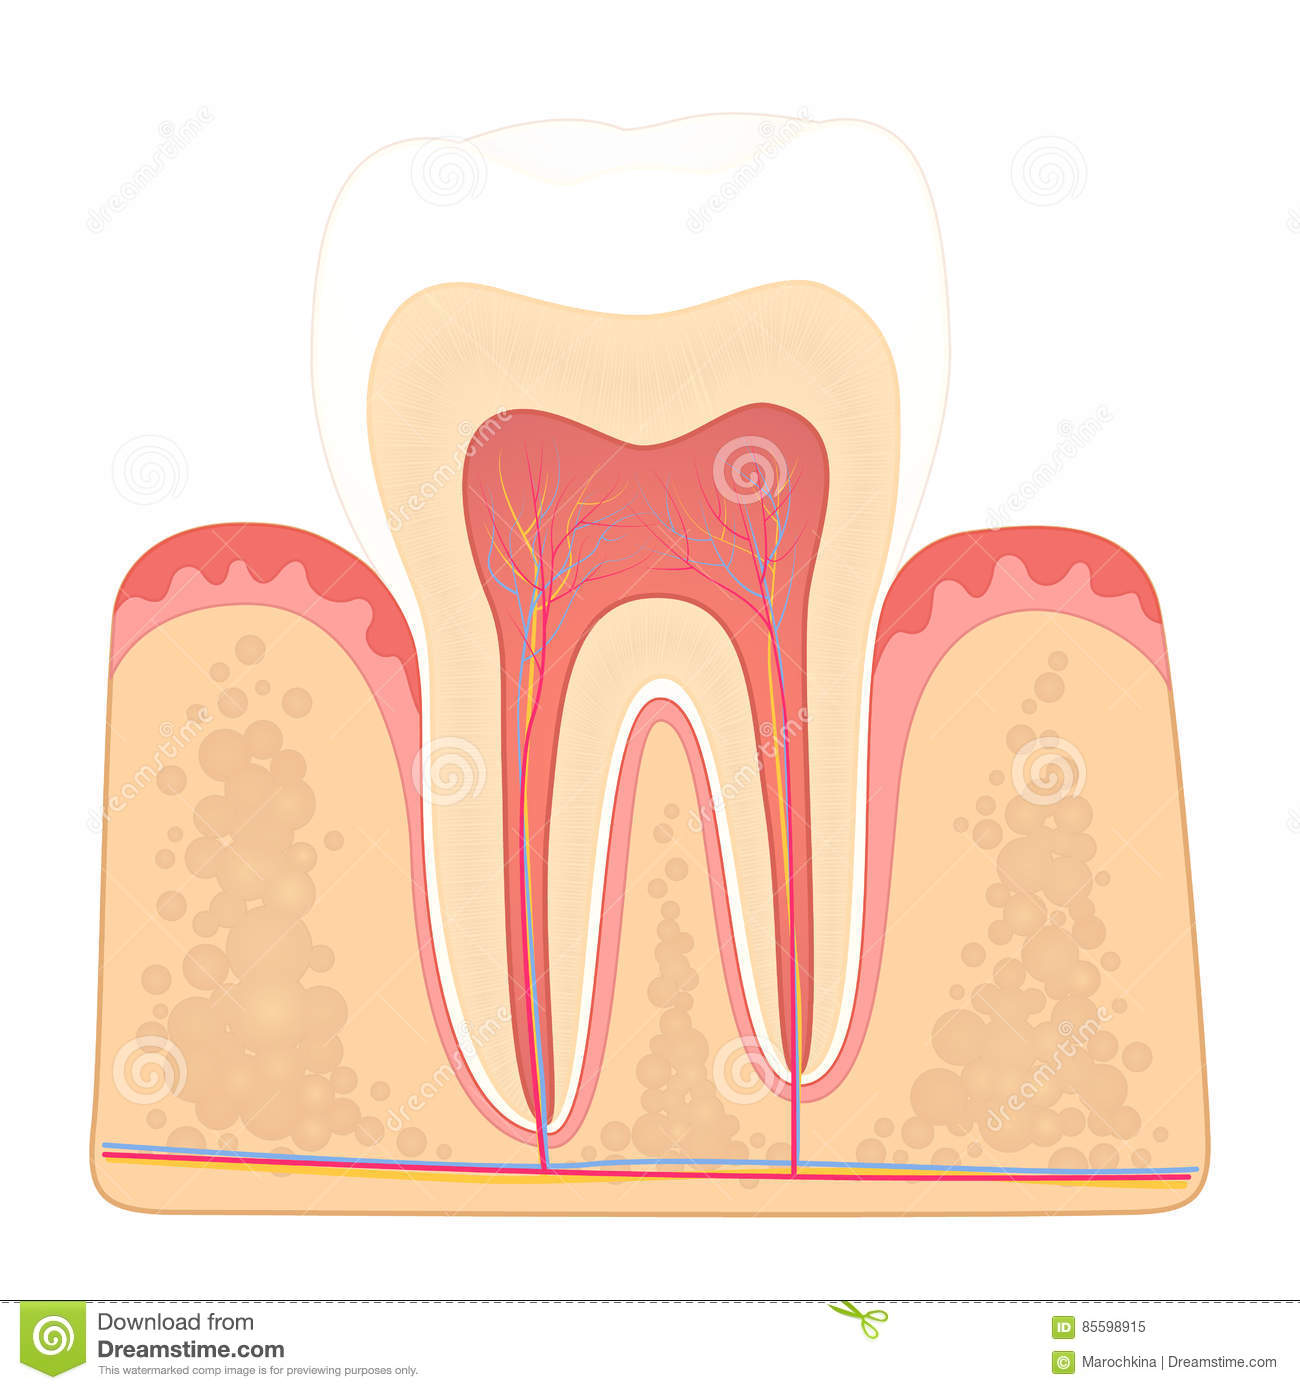 human tooth diagram horse tack structure of teeth stock vector illustration